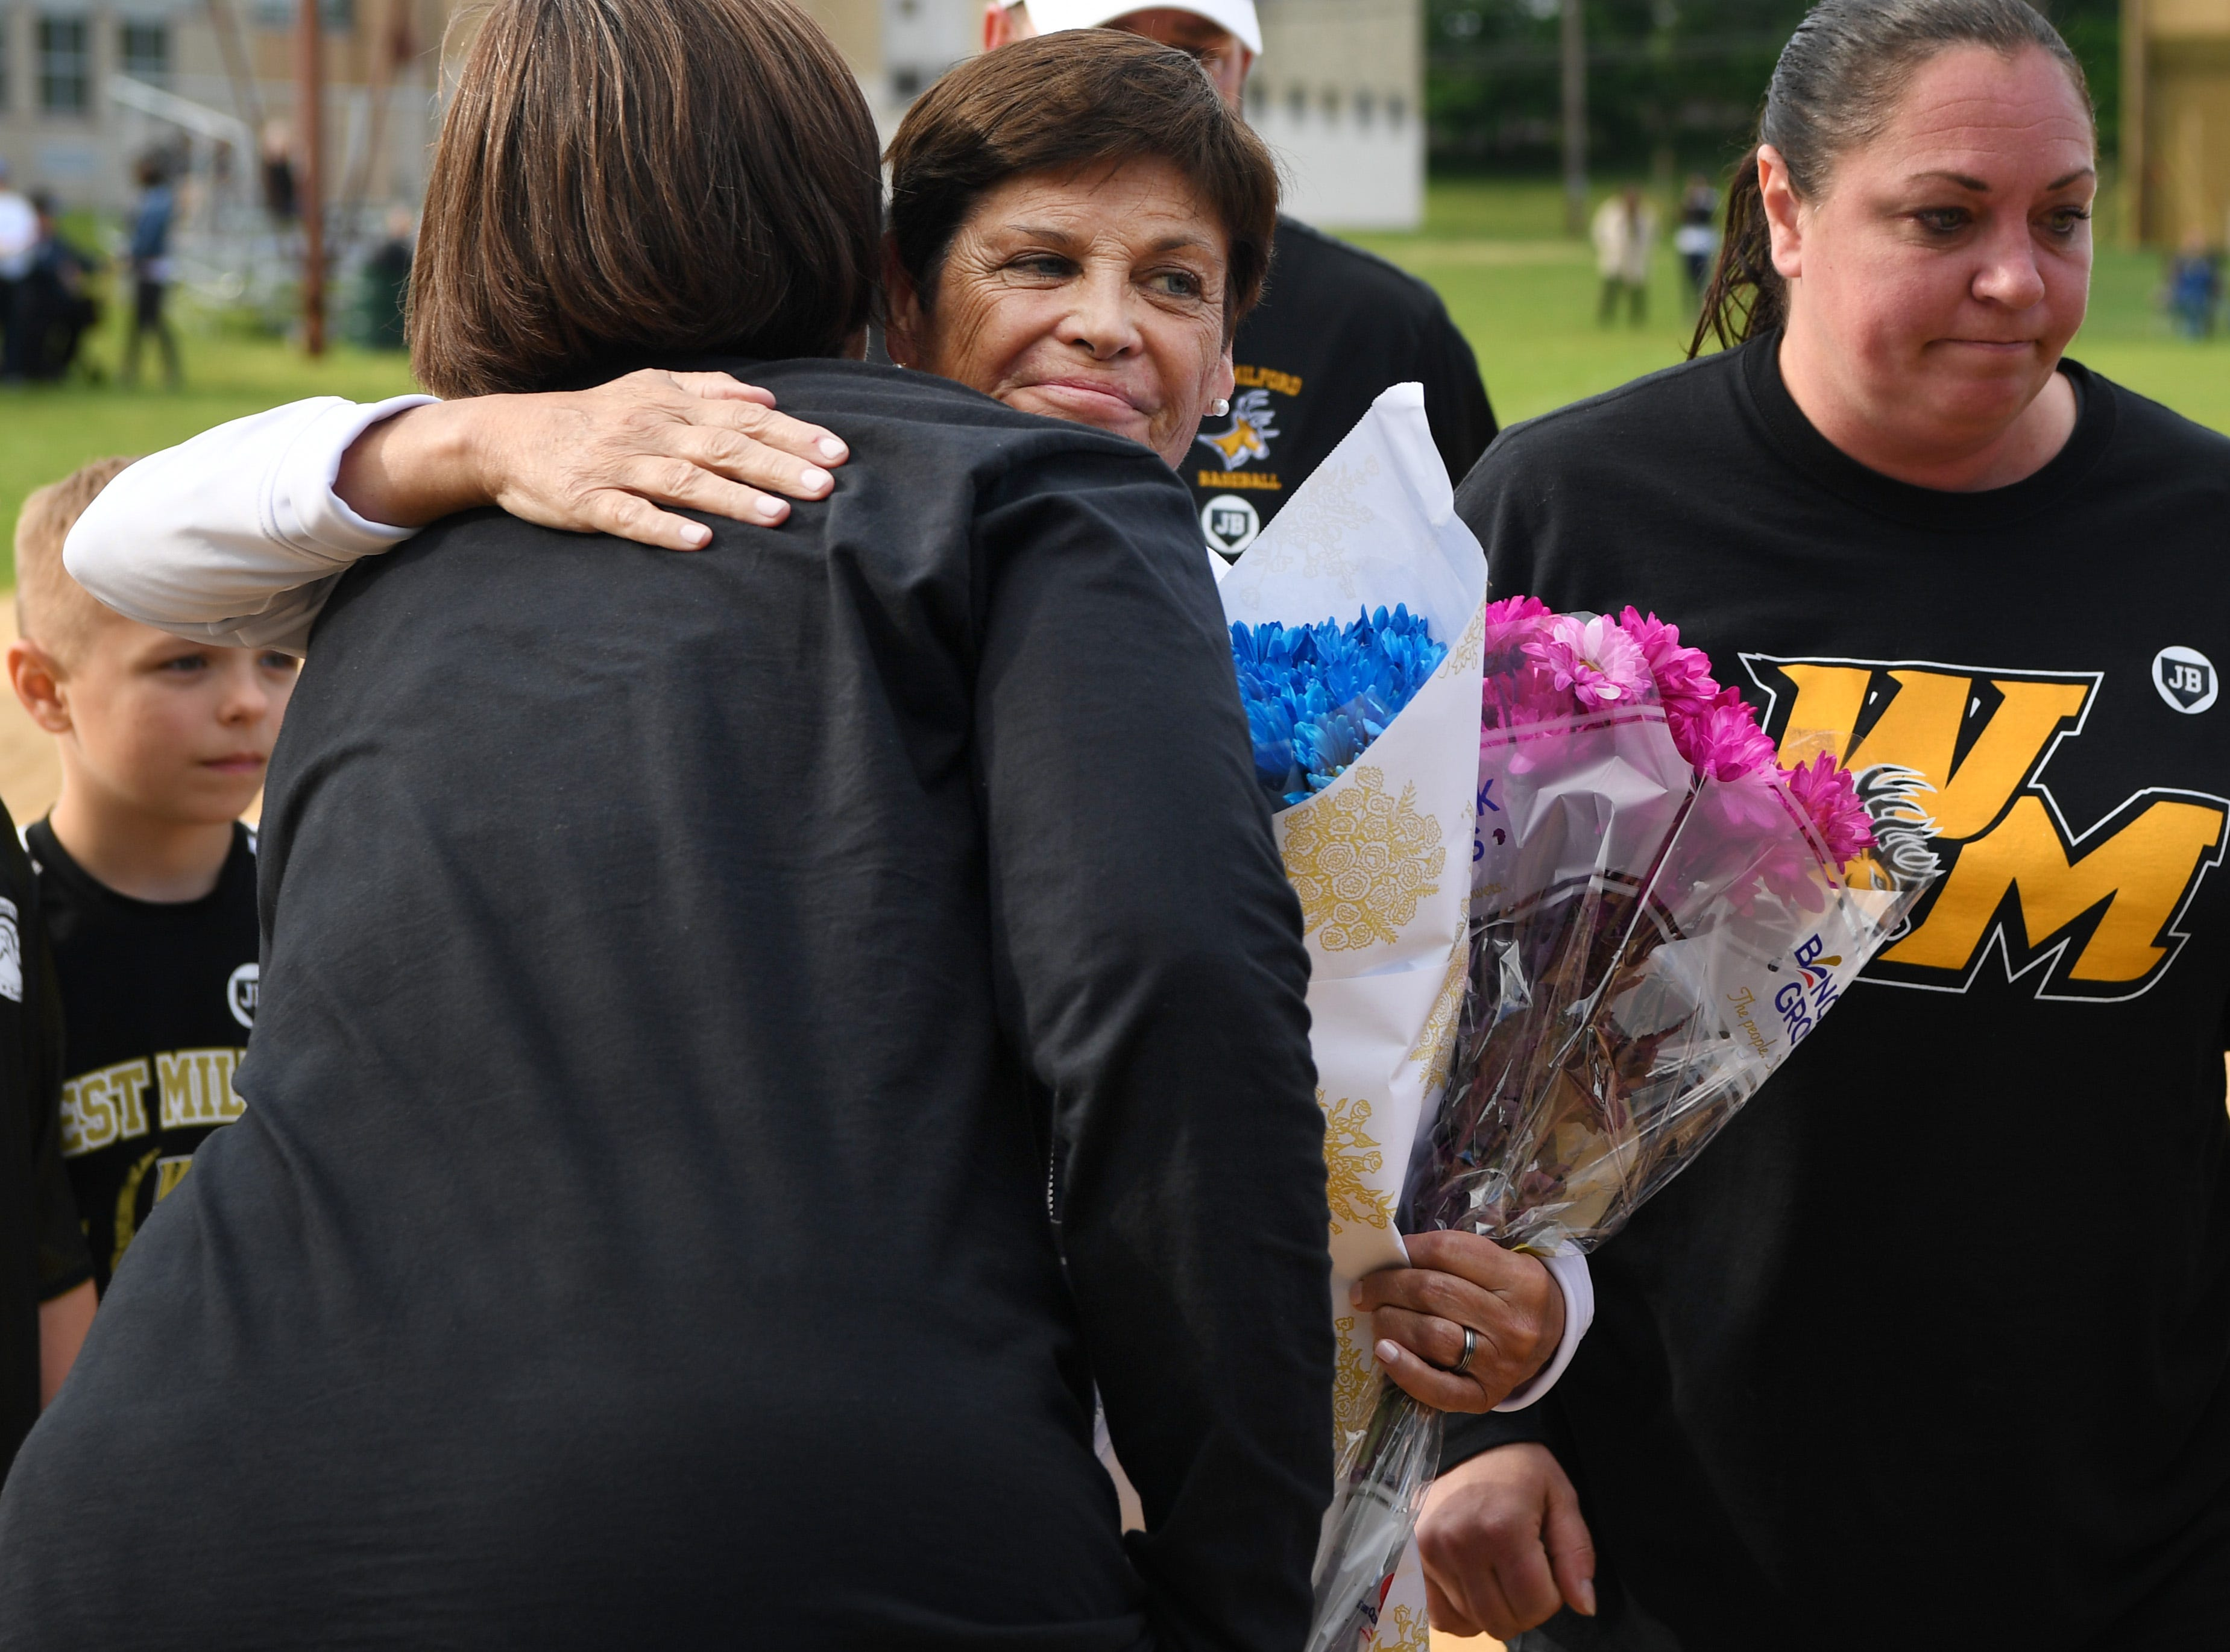 Passaic County Technical Institute vs. West Milford in the Passaic County Tournament softball final at Wayne Hills High School on Wednesday, May 15, 2019. Suzanne Busch gets a hug after a ceremony at home plate for her husband, umpire Jim Busch, who died in his sleep last Friday.